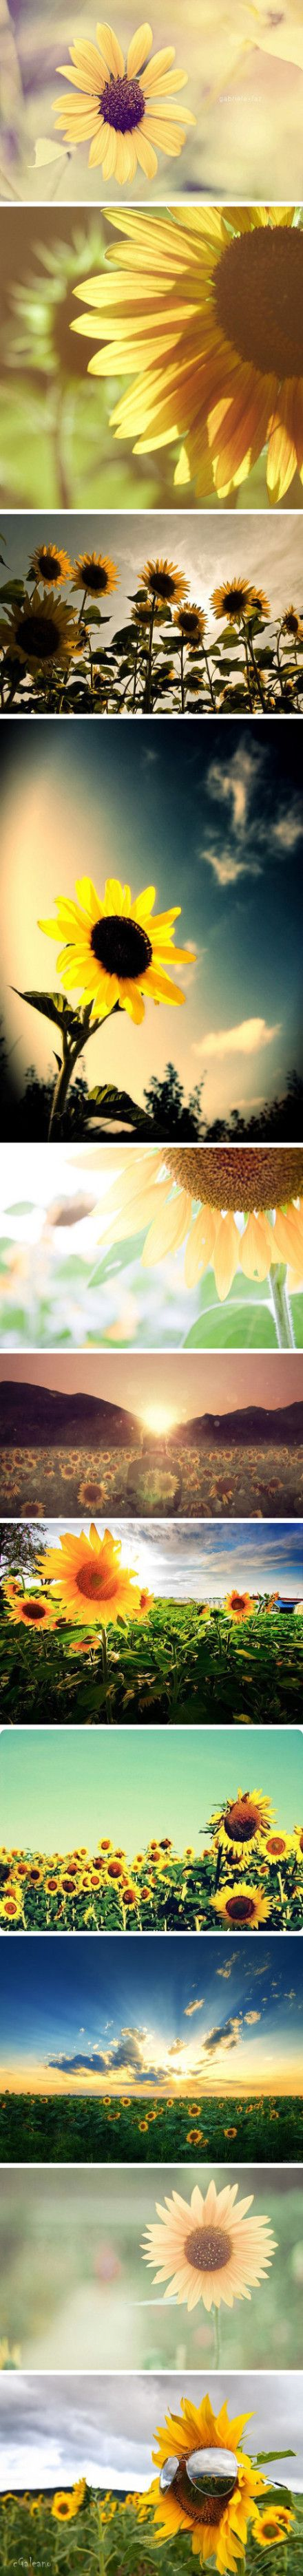 sunflowers are so cheerful! *_*